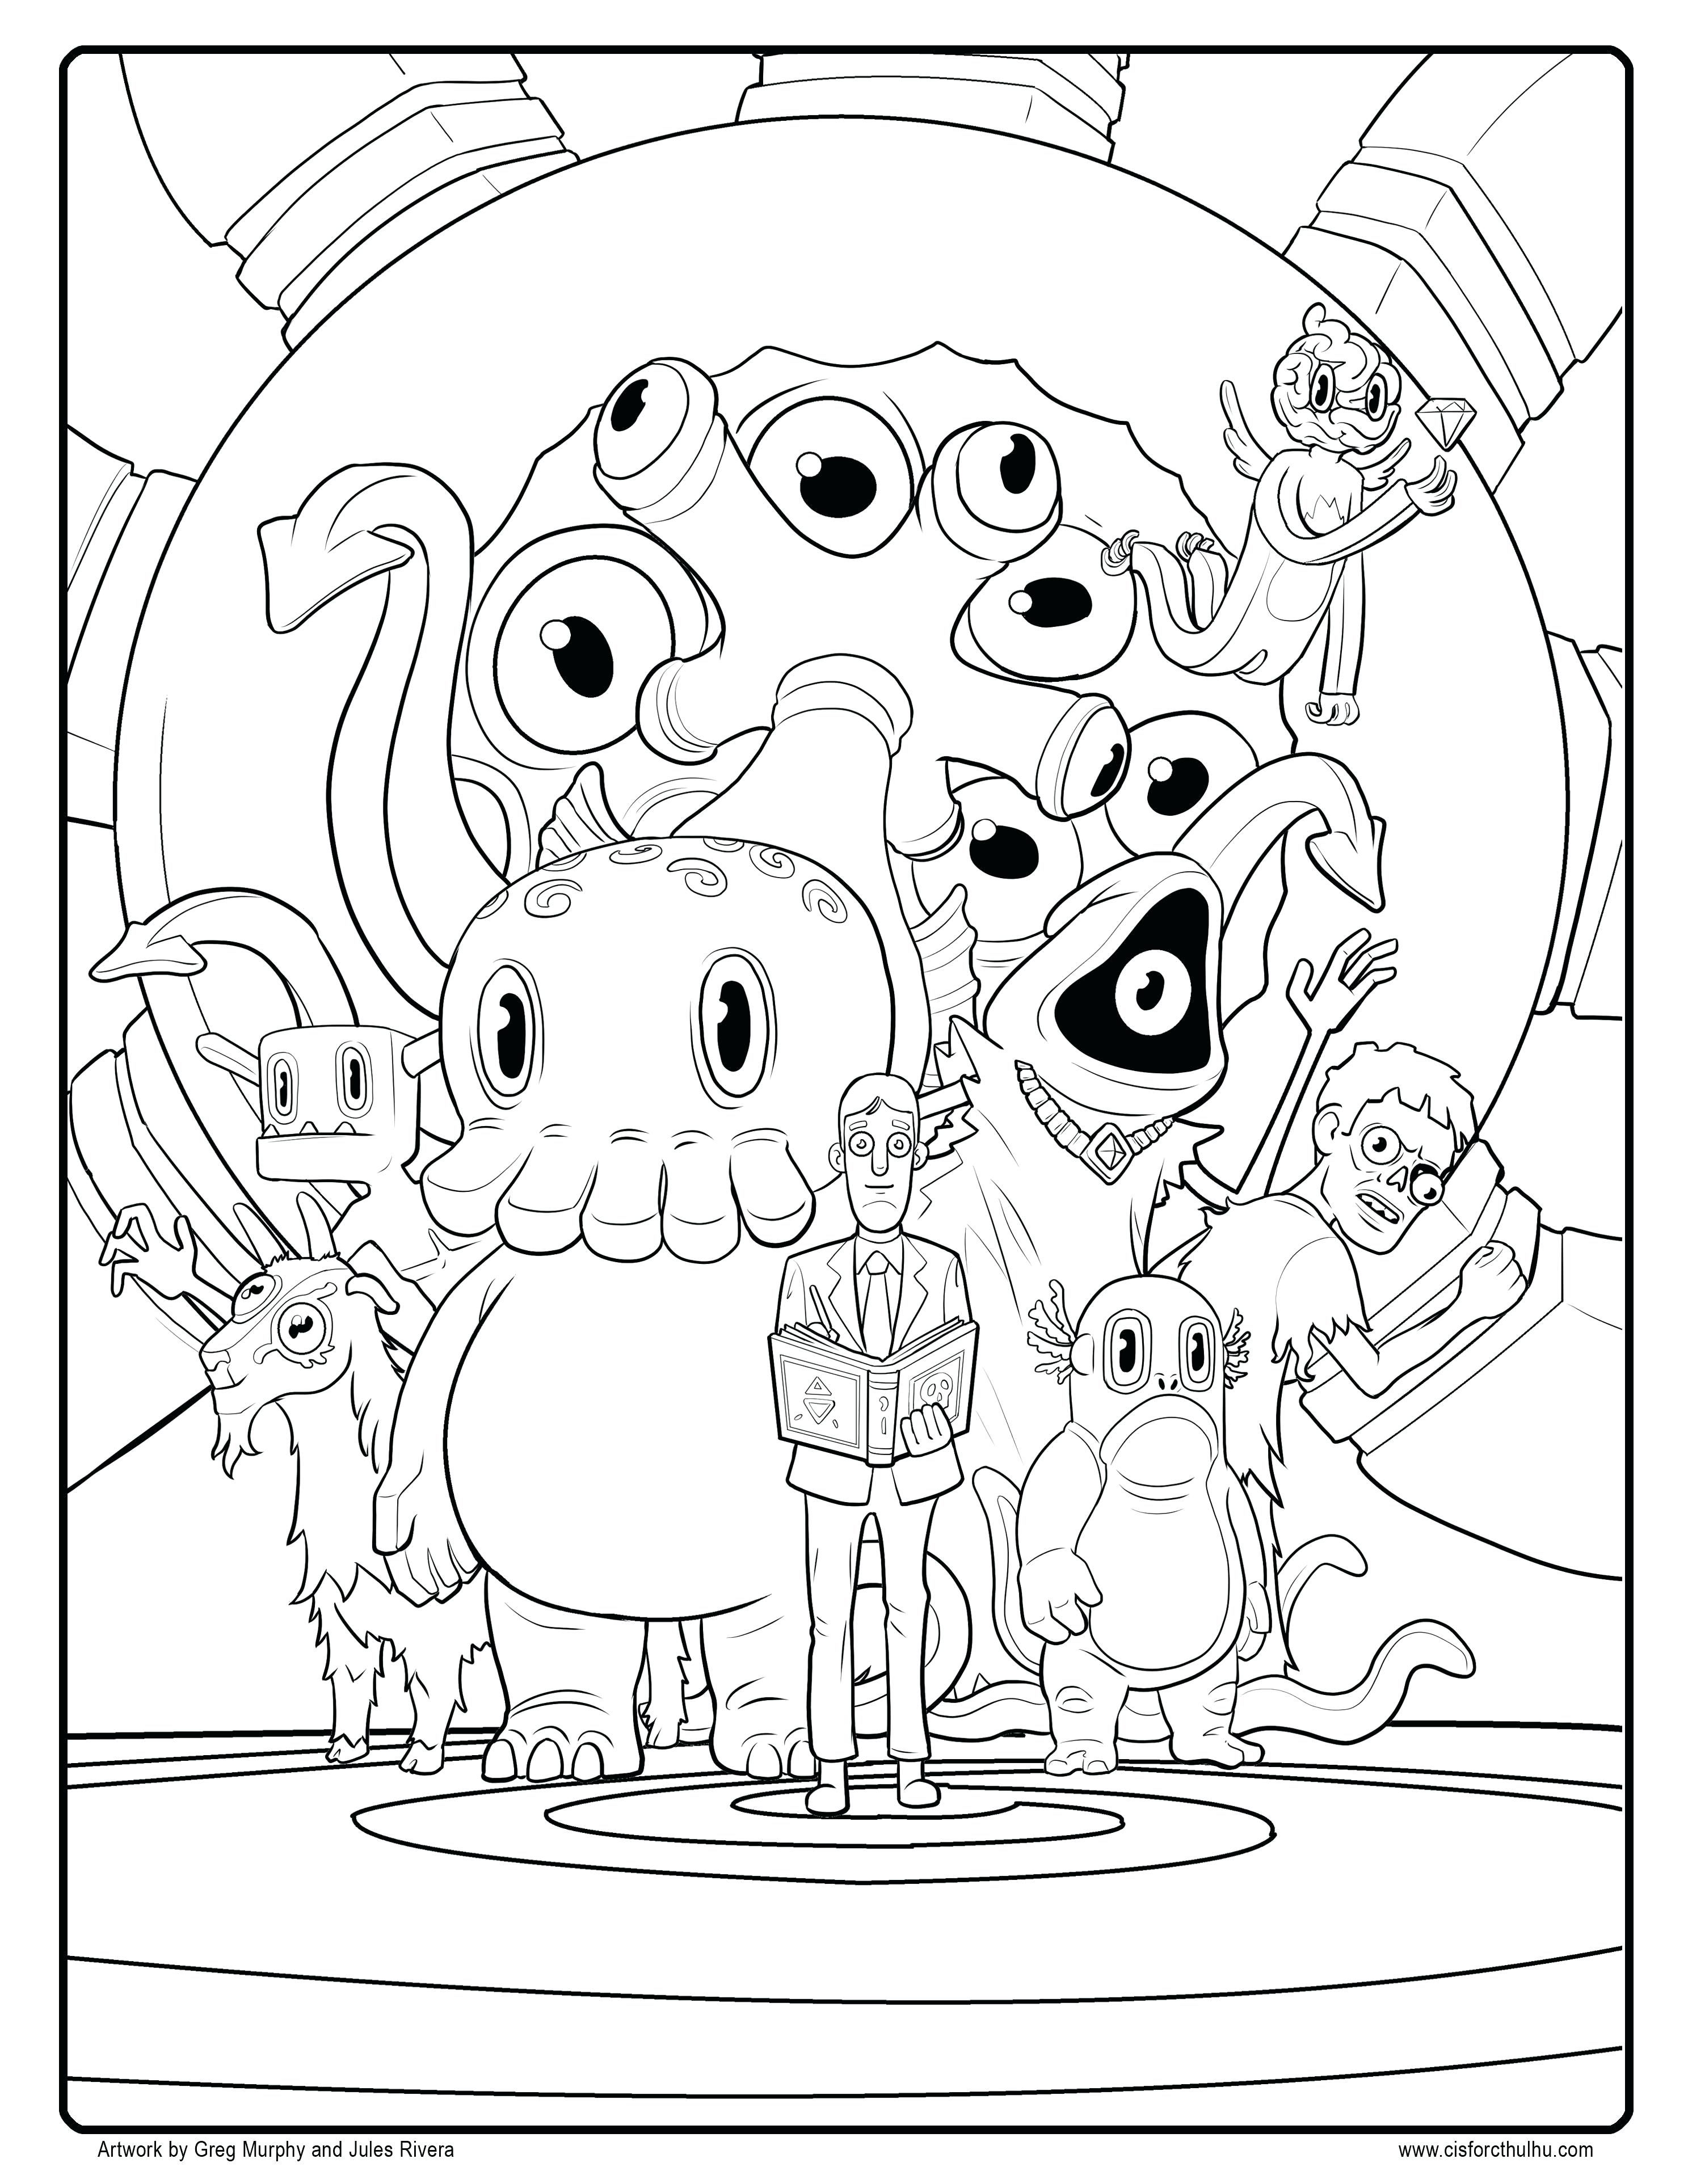 Sea Monster Coloring Pages Joseph And His Brothers Coloring Sheets Cellarpaperco